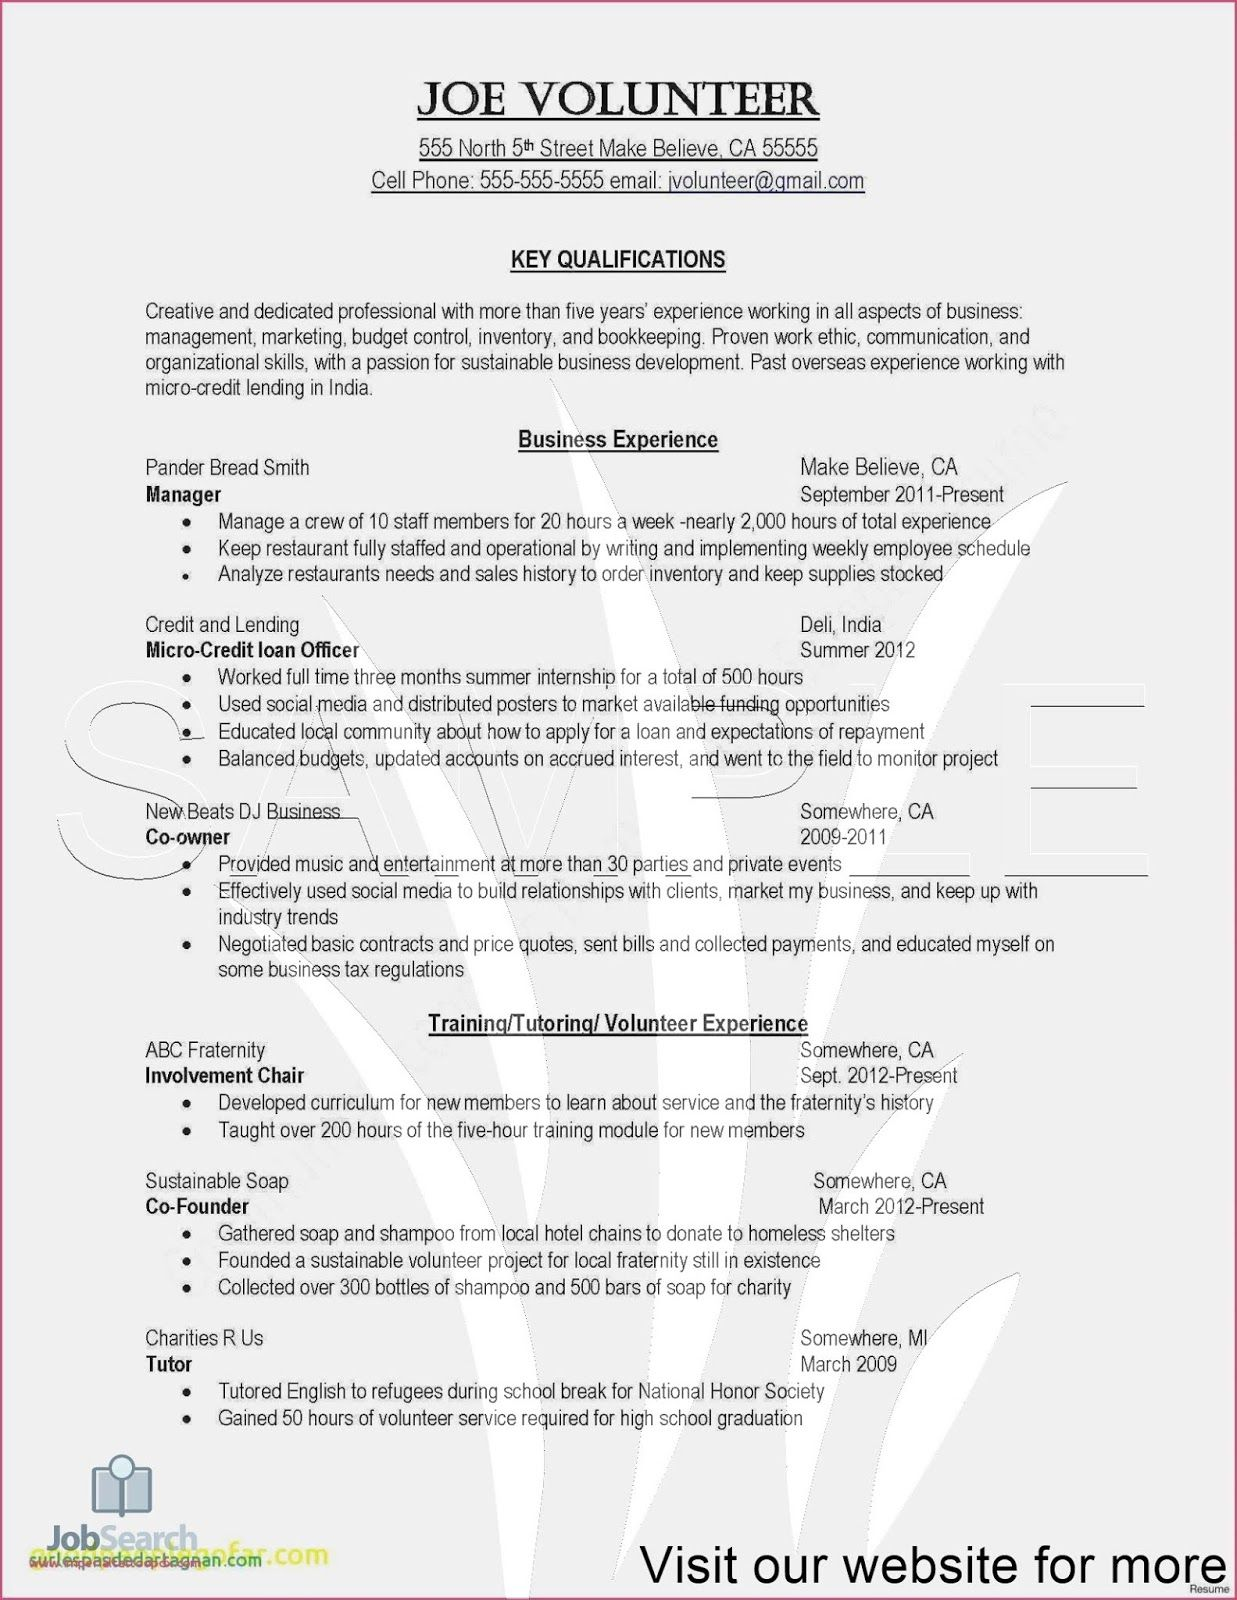 resume template professional cv design free make on phone physical therapy registered Resume Make Resume On Phone Free